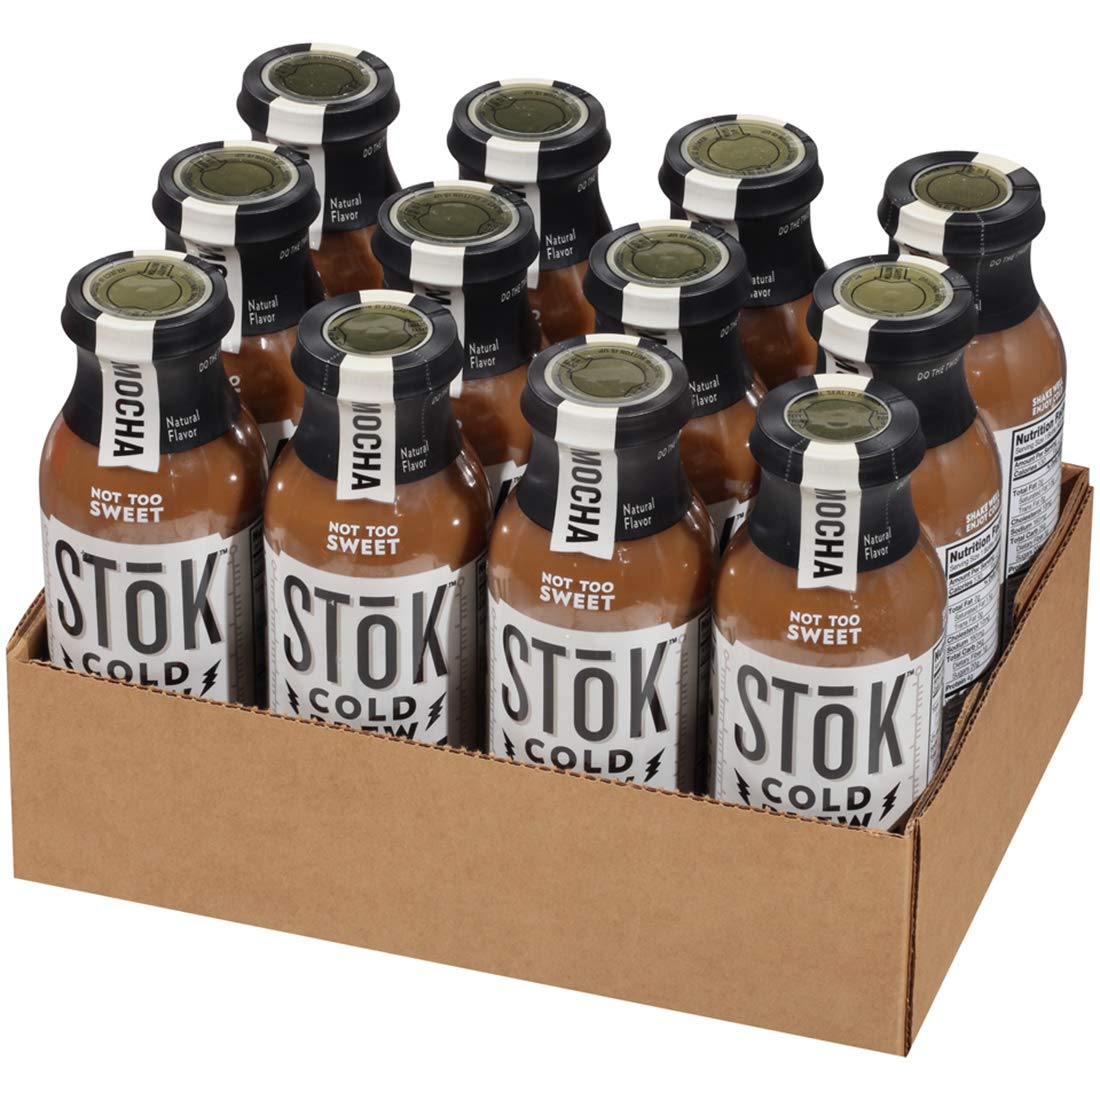 SToK Cold-Brew Iced Coffee, Mocha, 13.7 Ounce, 12 Count